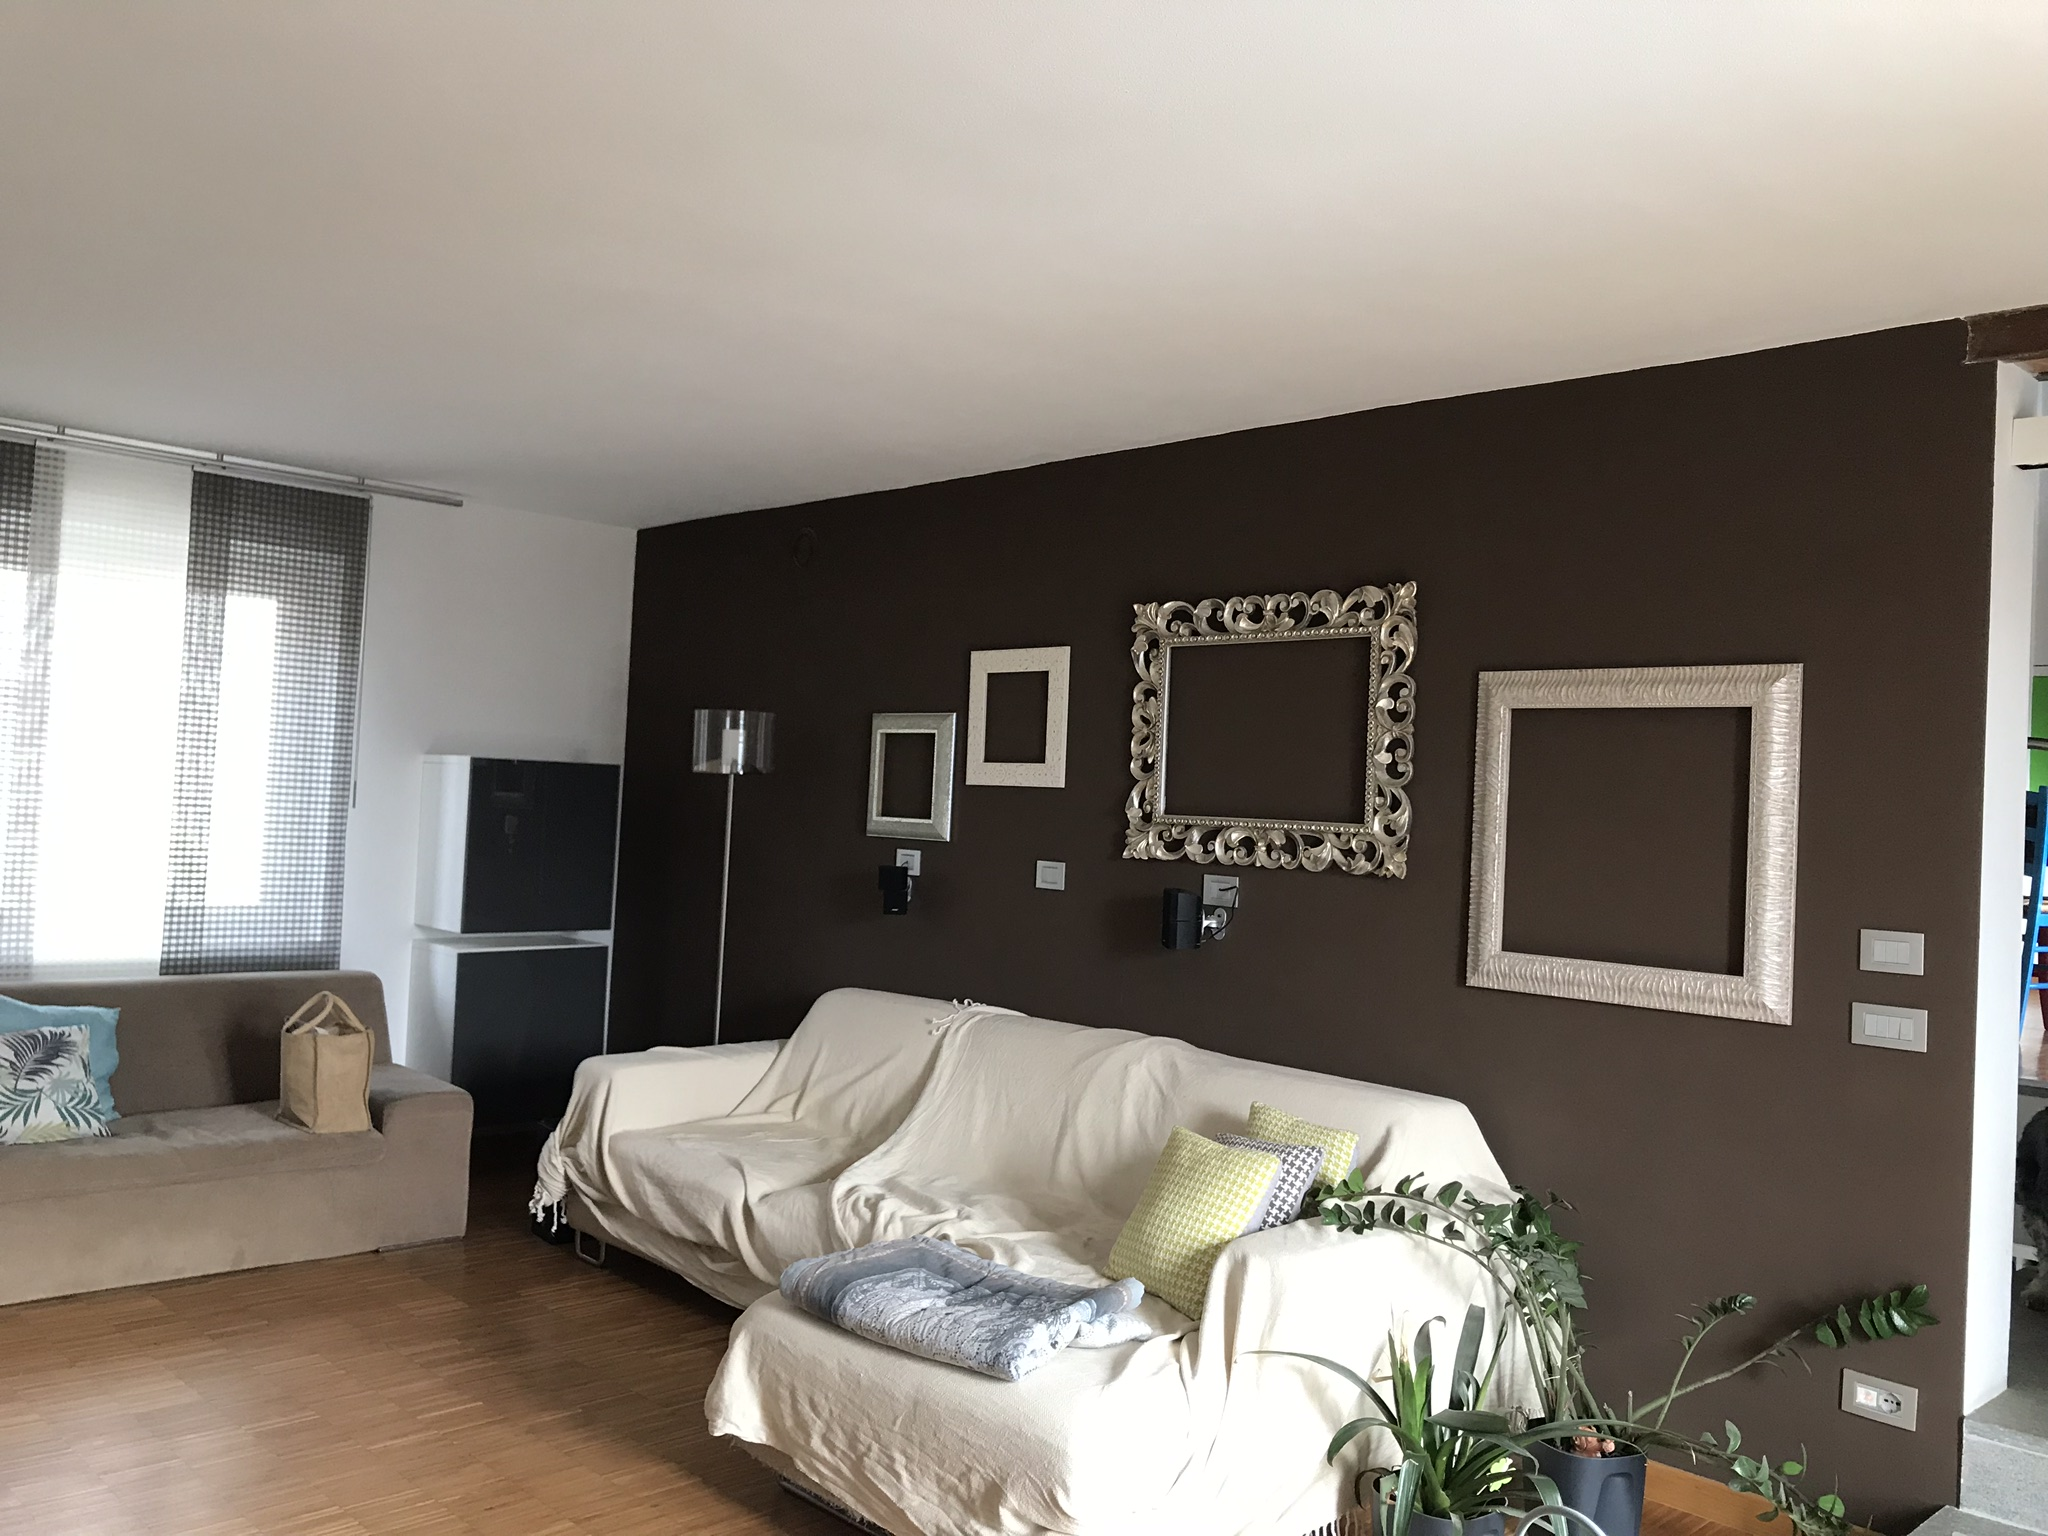 San Michele Mondovì seels renovated apartment